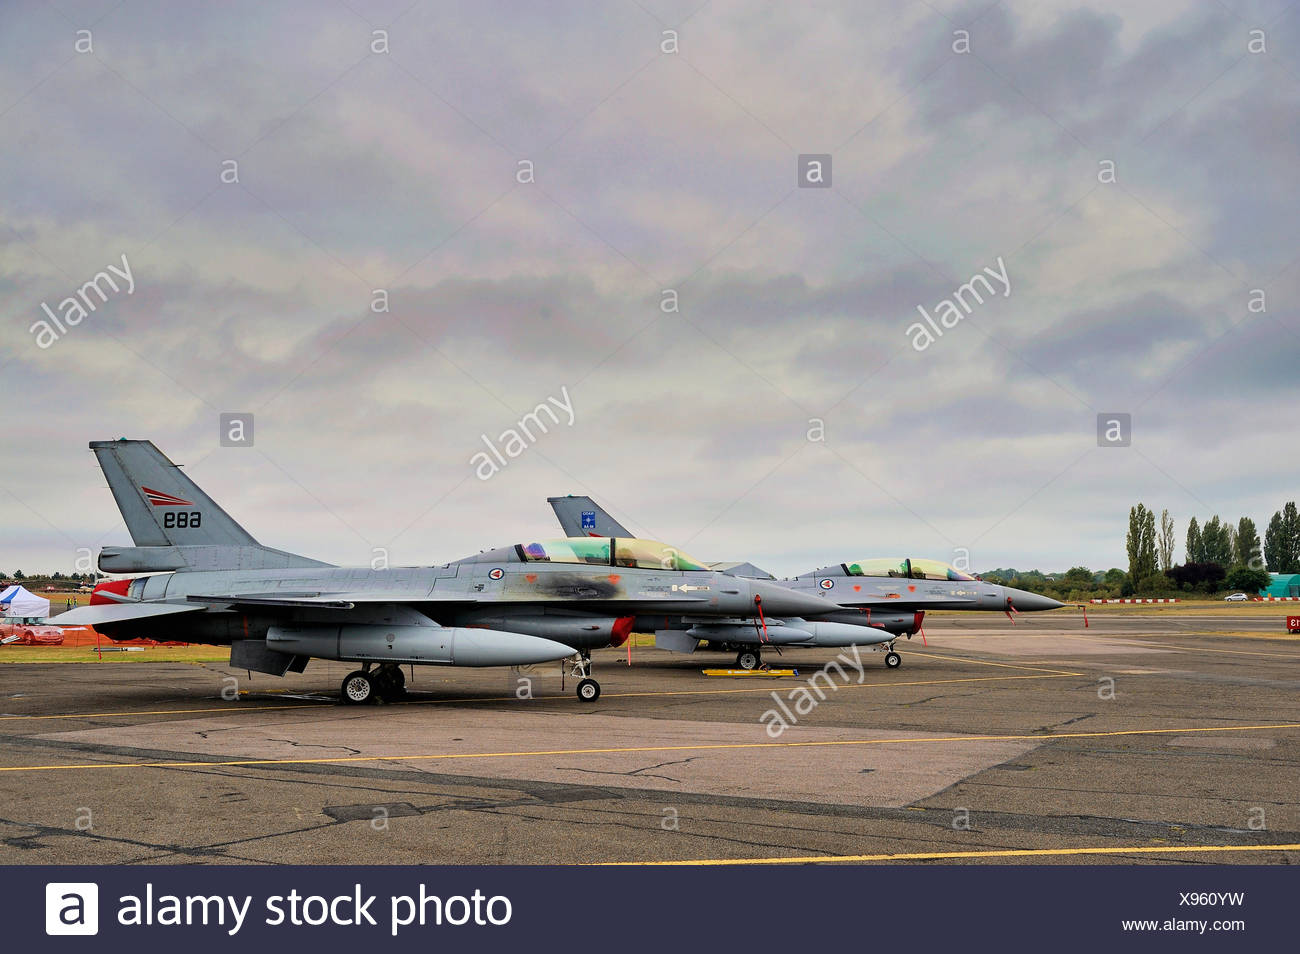 Two Norwegian Air Force General Dynamics F-16s at North Weald Airfield, Essex, England, United Kingdom, Europe - Stock Image